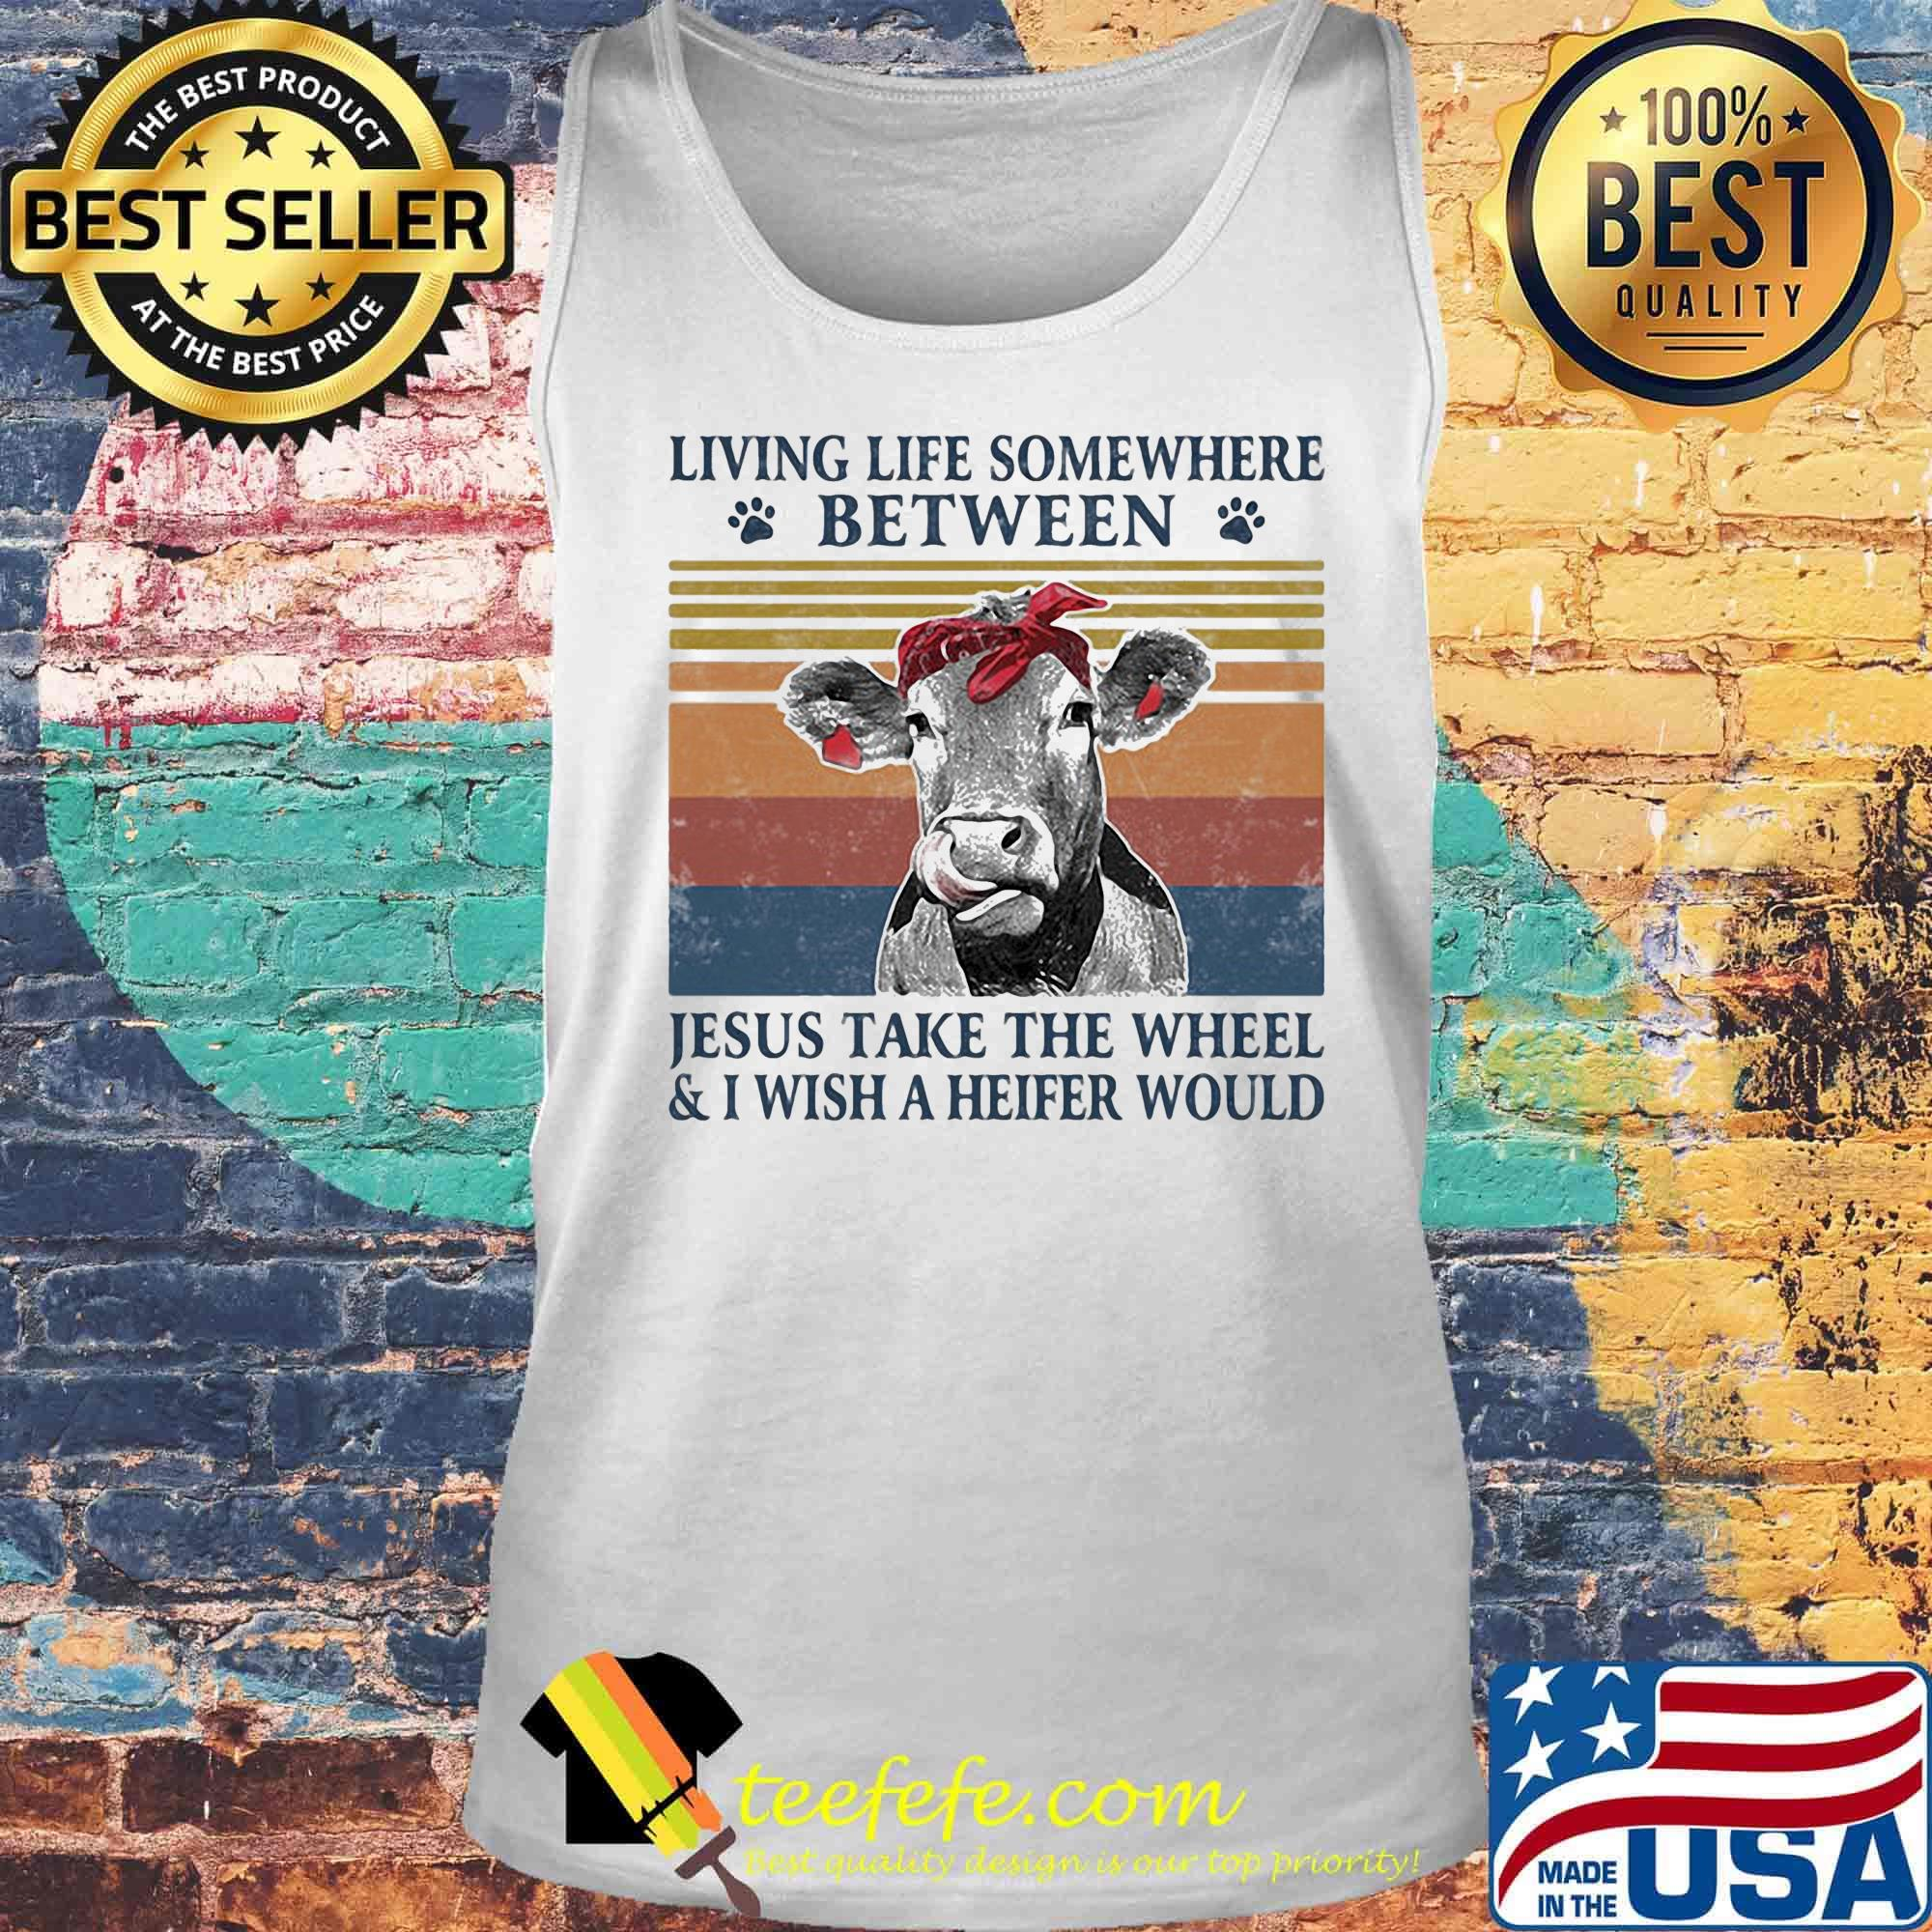 Cow Living Life Somewhere Between Jesus Take The Wheel And I Wish A Heifer Would Vintage Retro Shirt Teefefe